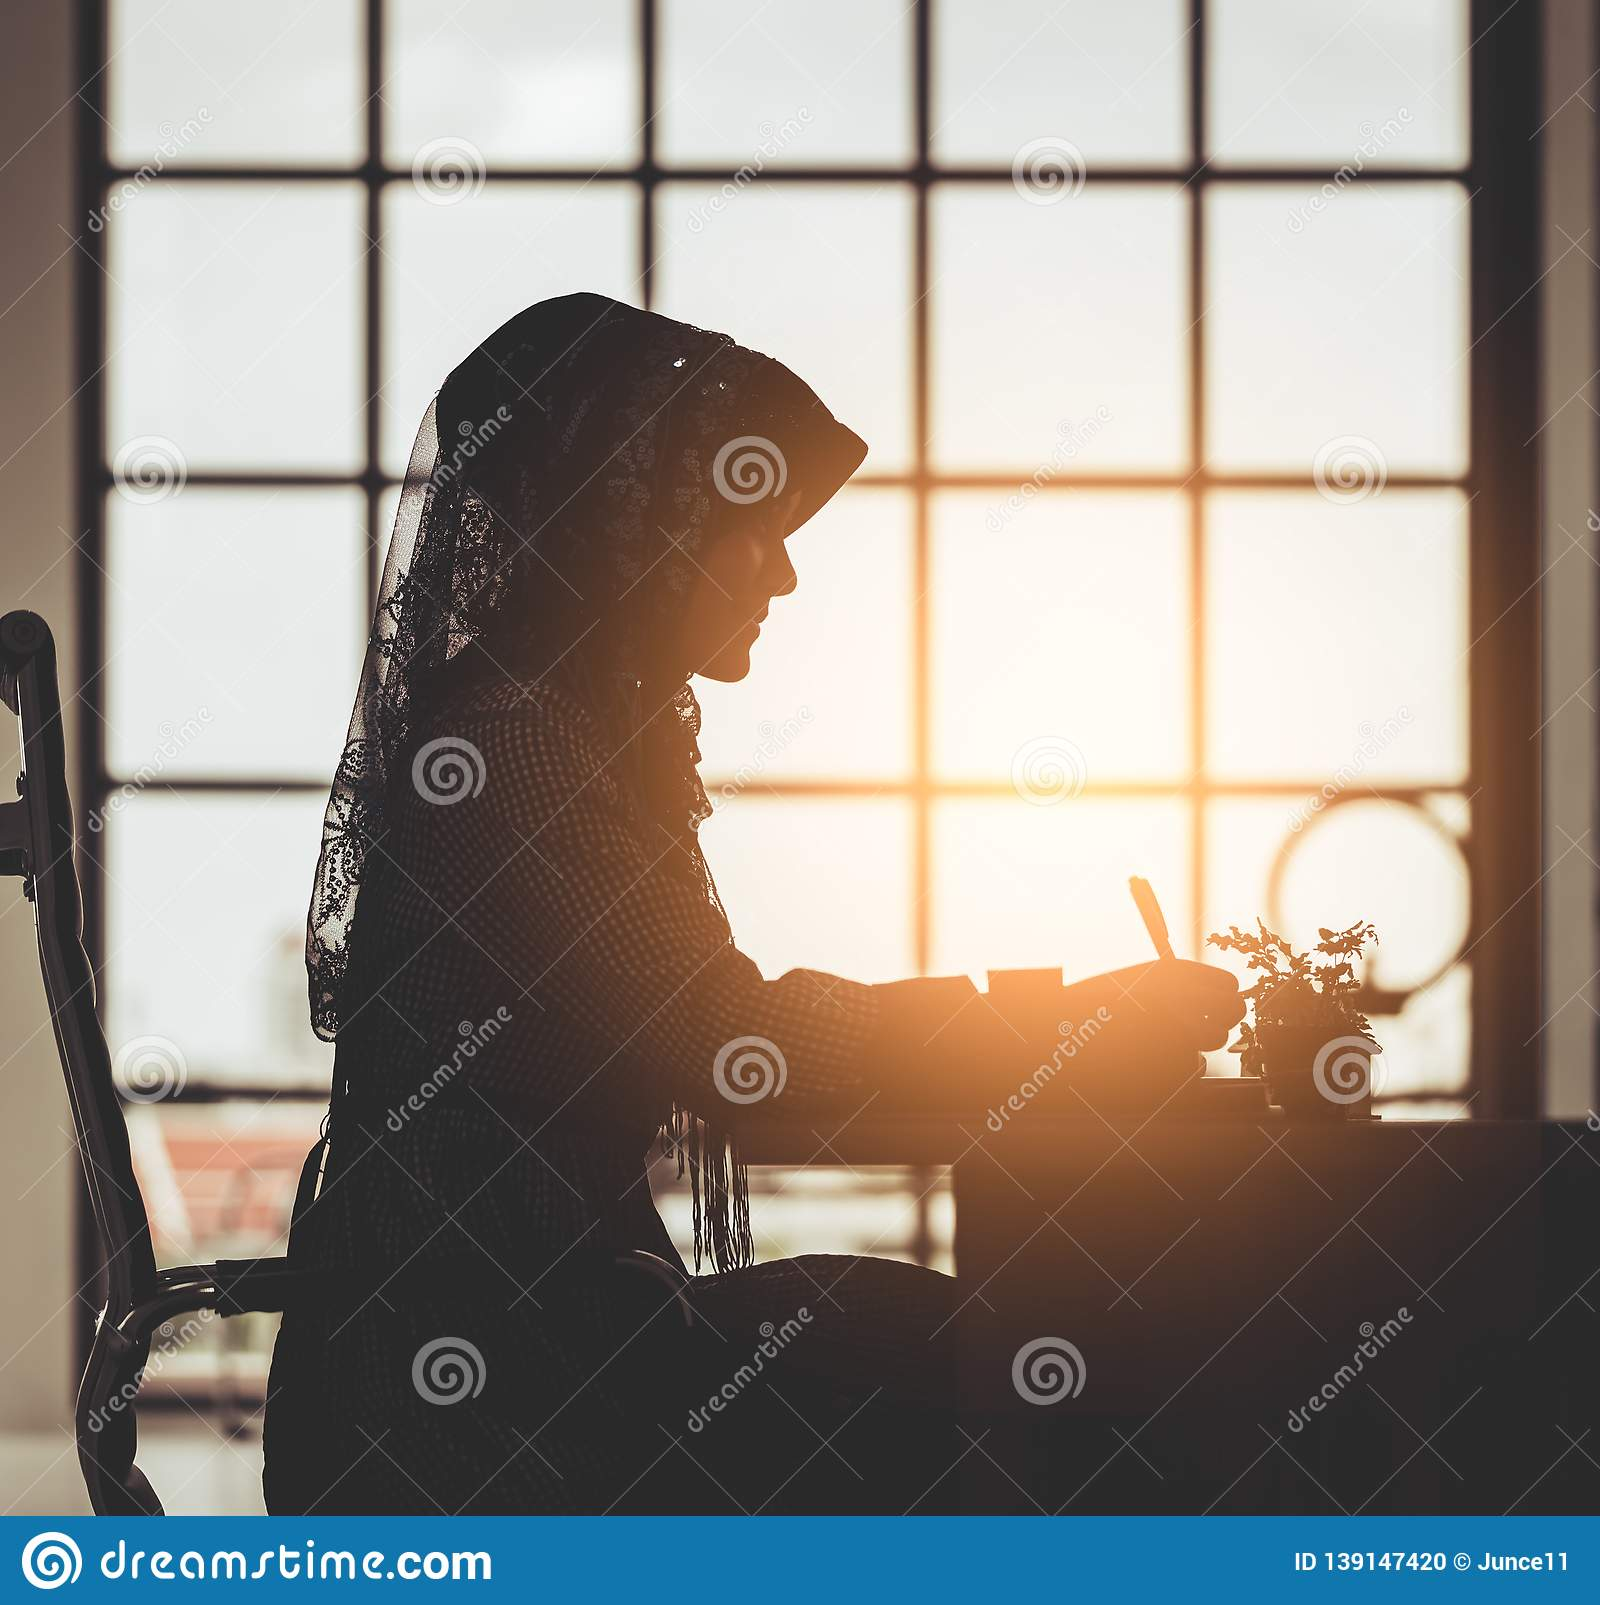 Muslim business people silhouette of islam woman working on office table windows morning flare